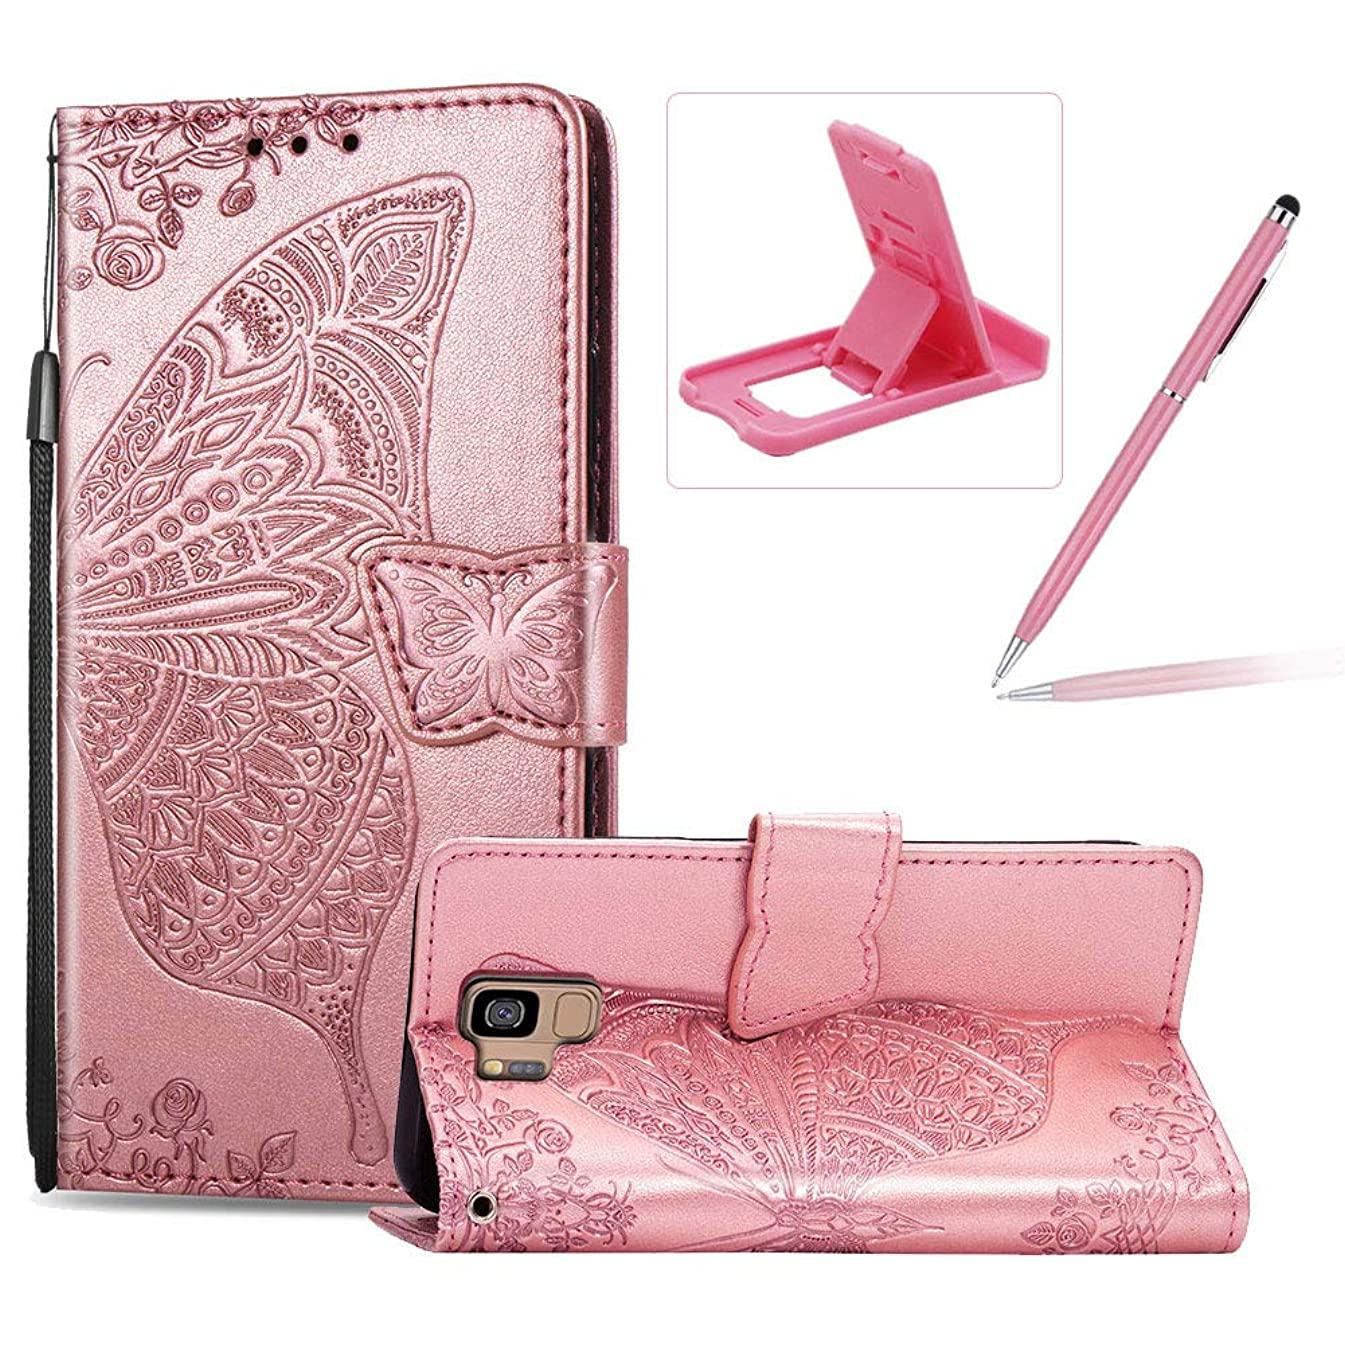 Strap Leather Case for Samsung Galaxy S9,Wallet Cover for Samsung Galaxy S9,Herzzer Classic 3D Rose Gold Butterfly Flower Print Relief Magnetic Stand Case with Soft TPU